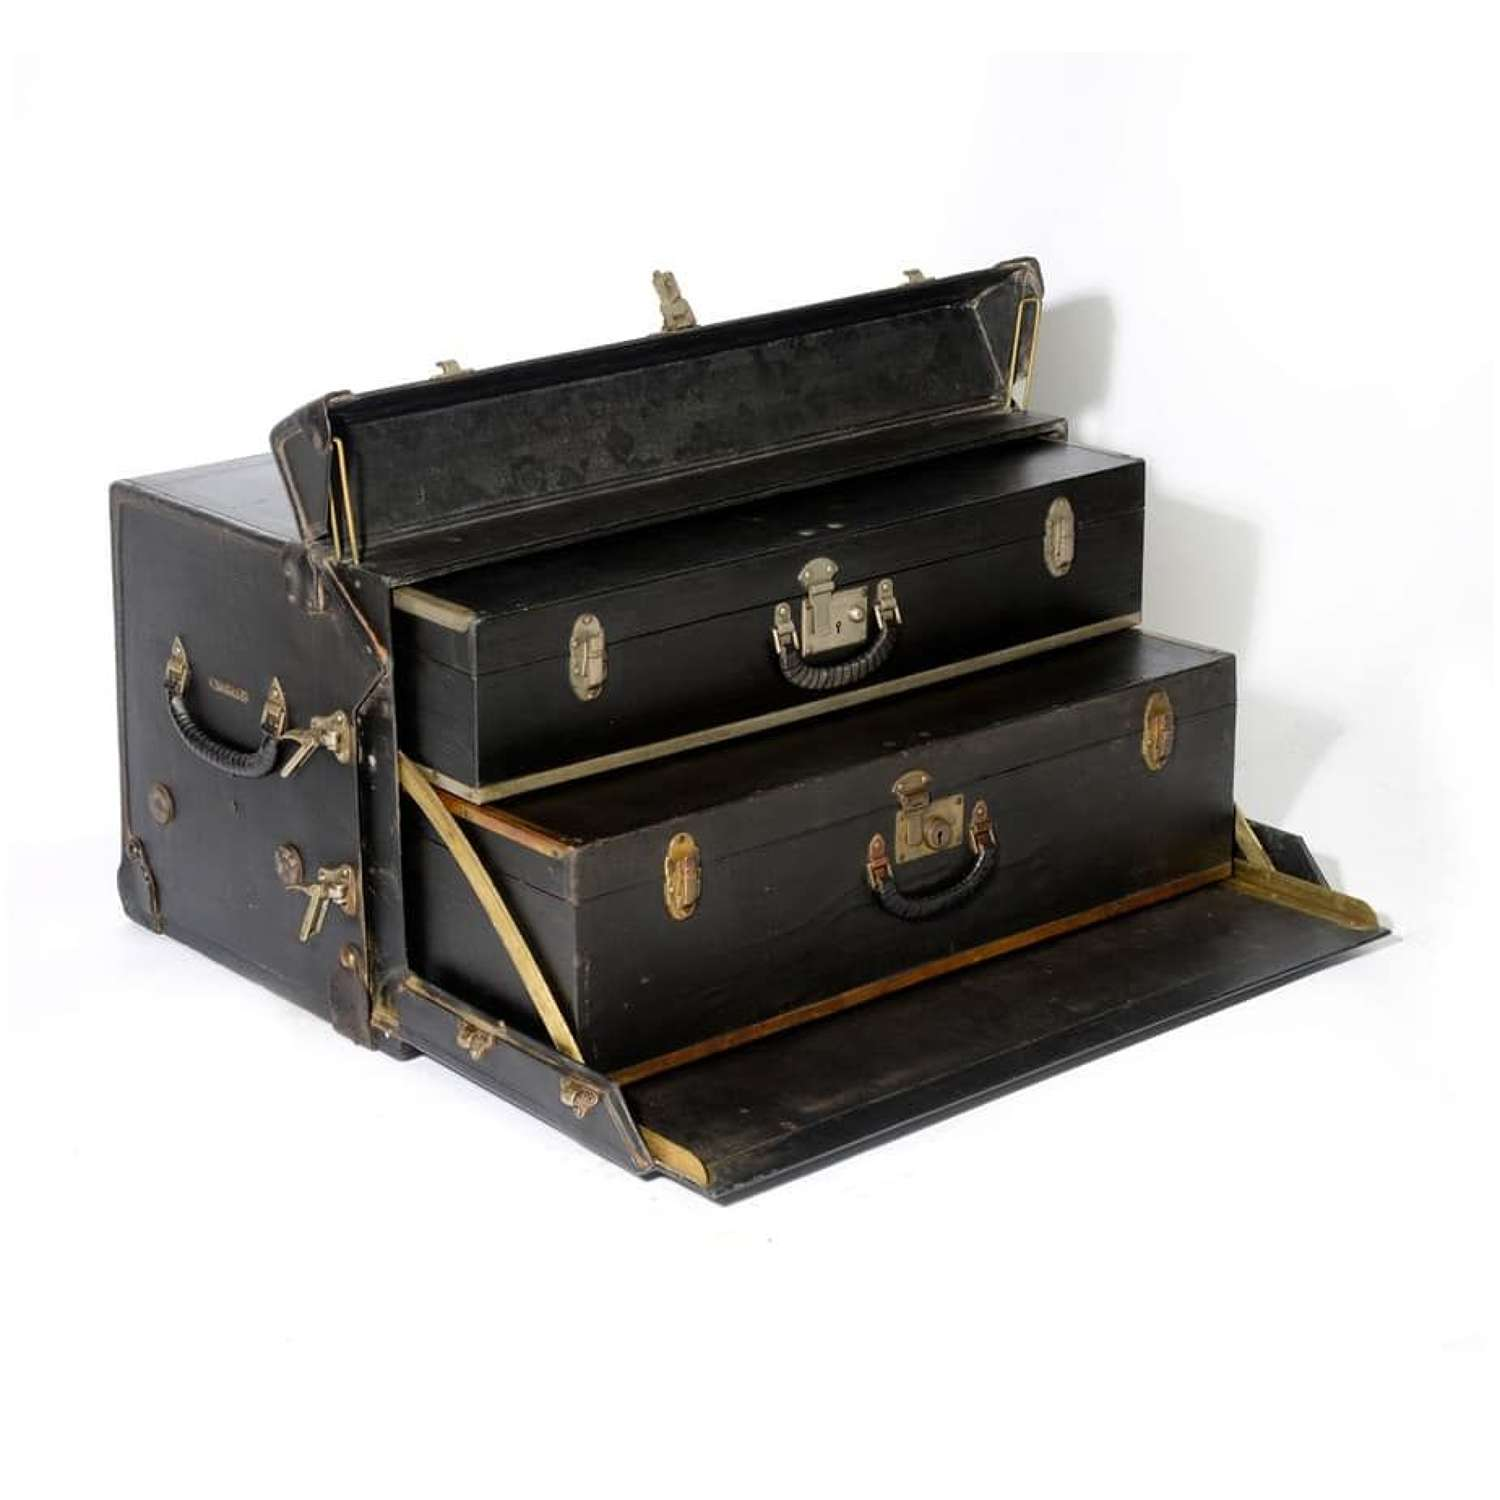 Motoring trunk - by J. B. Brooks and Co. of Birmingham